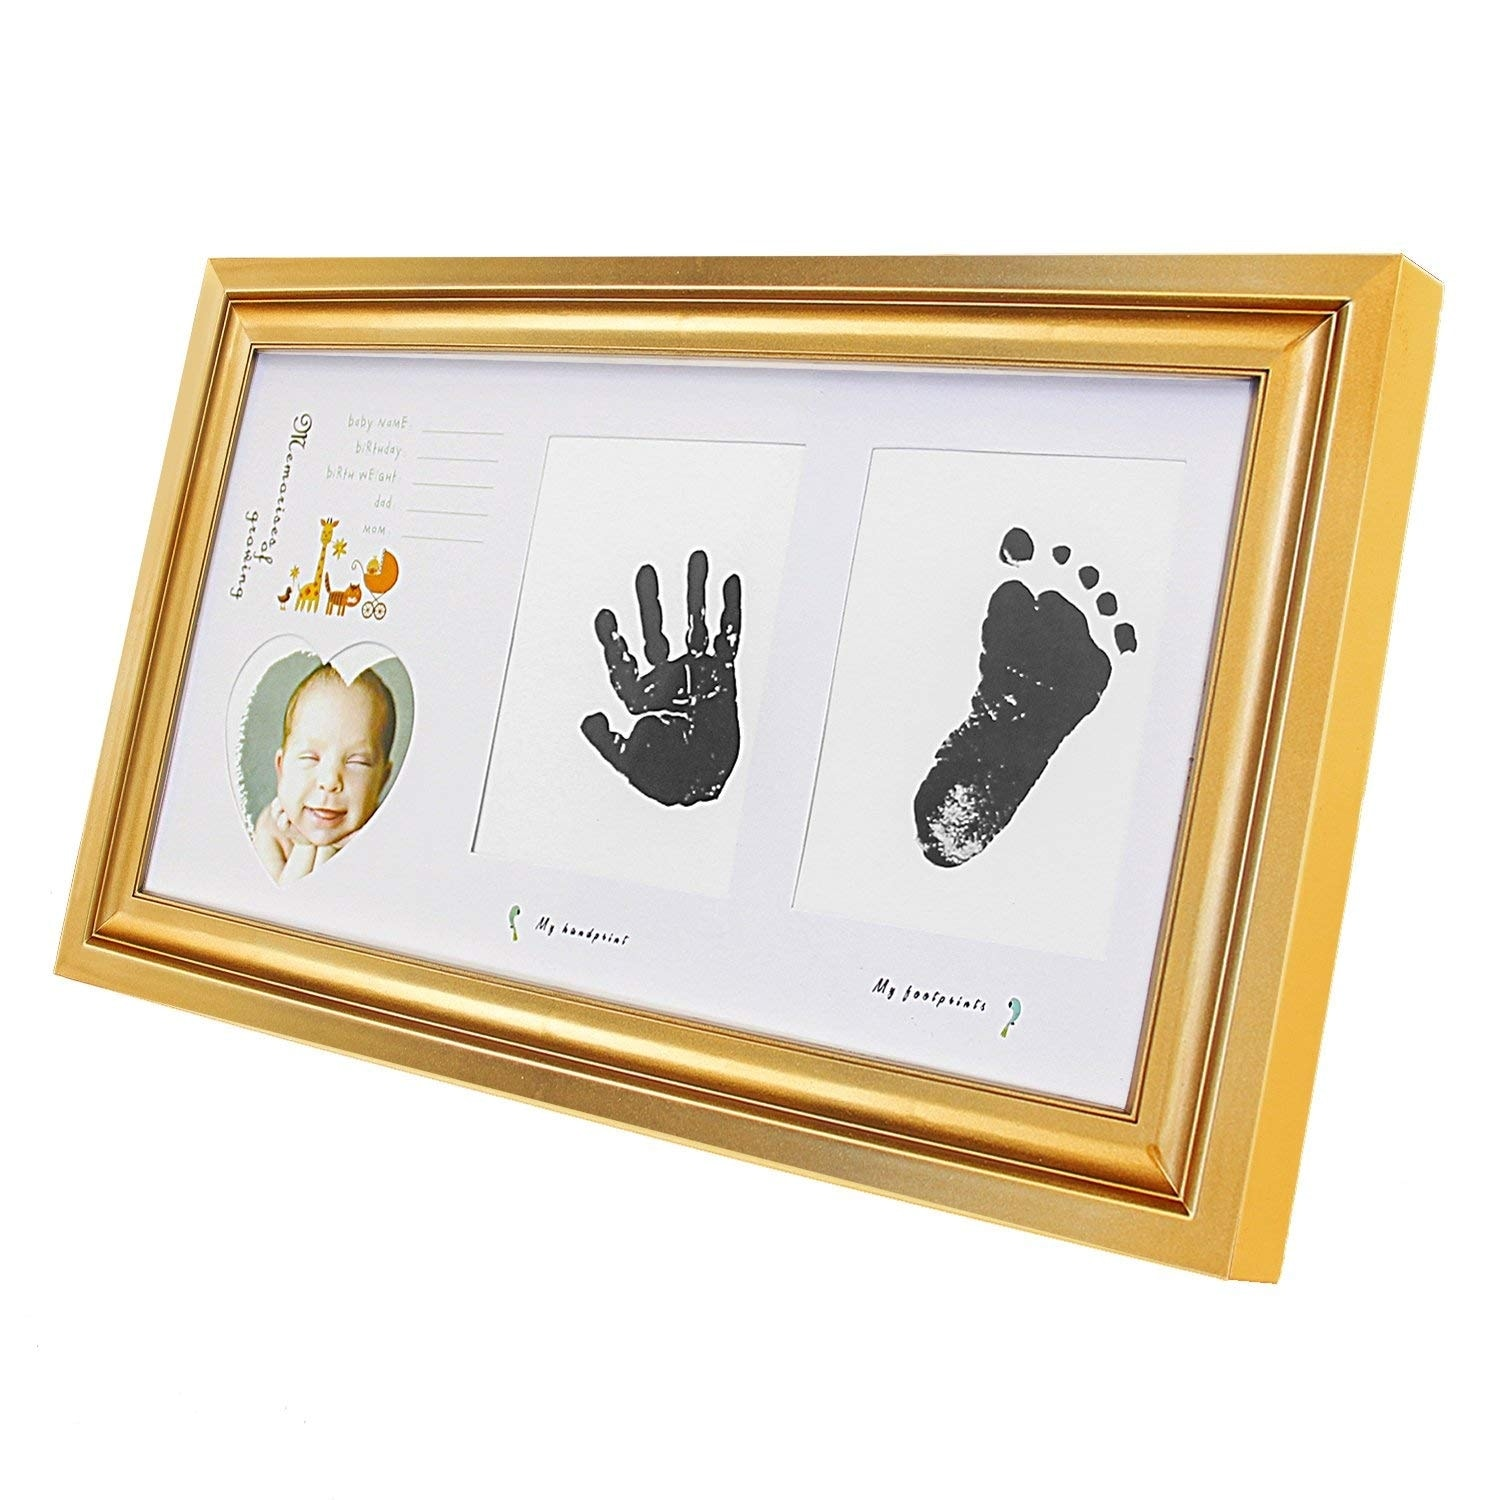 Hello Laura Golden Decorative Family Collage Wall Hanging Photo Frame Overstock 24124076